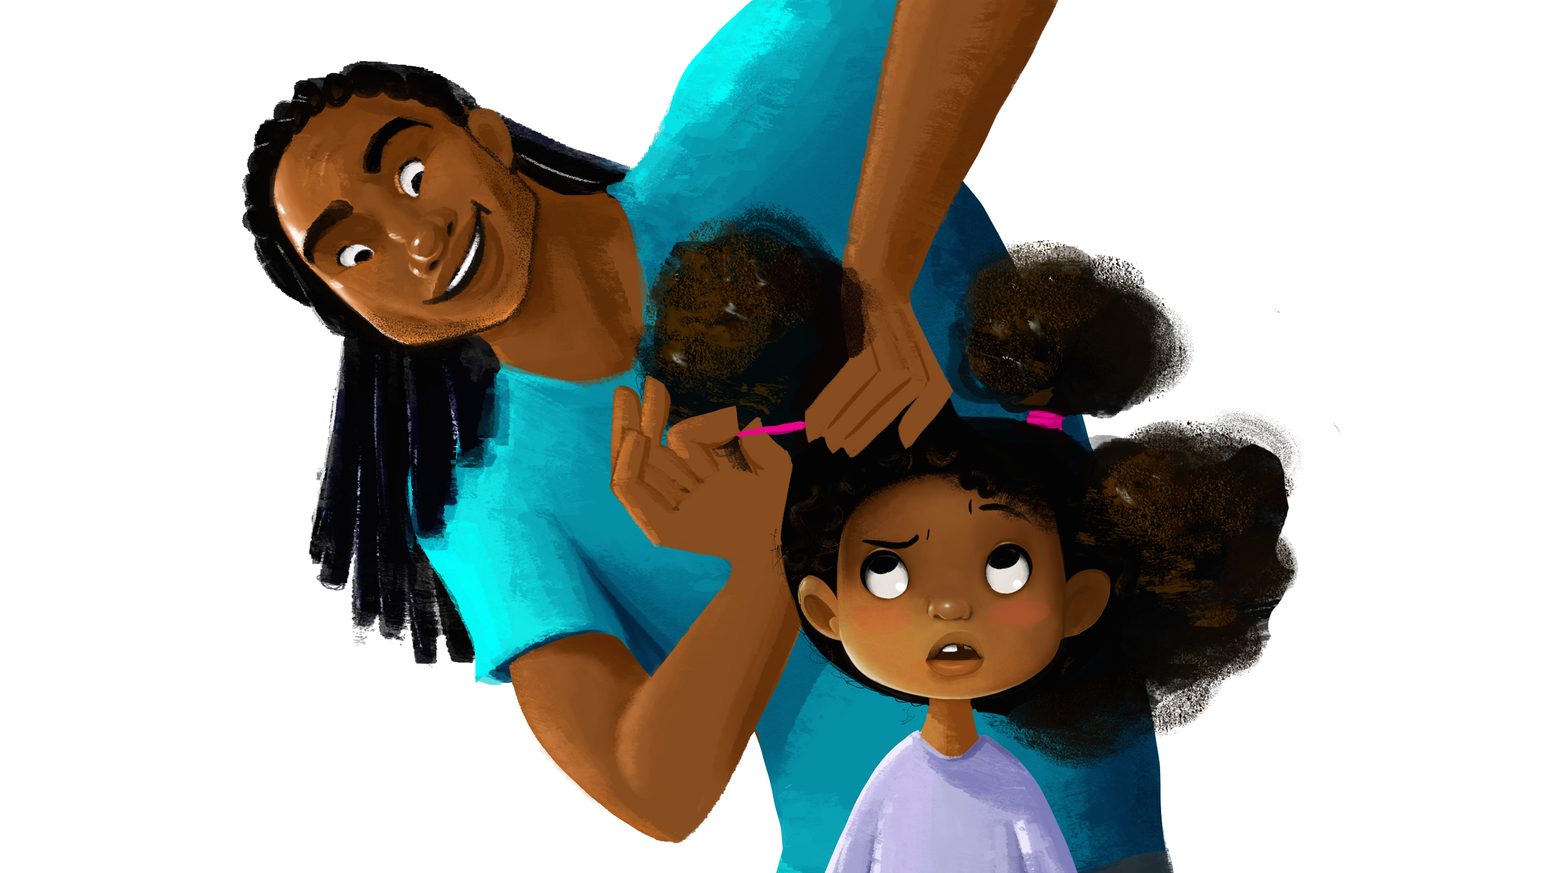 Hair Love | Animated Short Film by Matthew A. Cherry